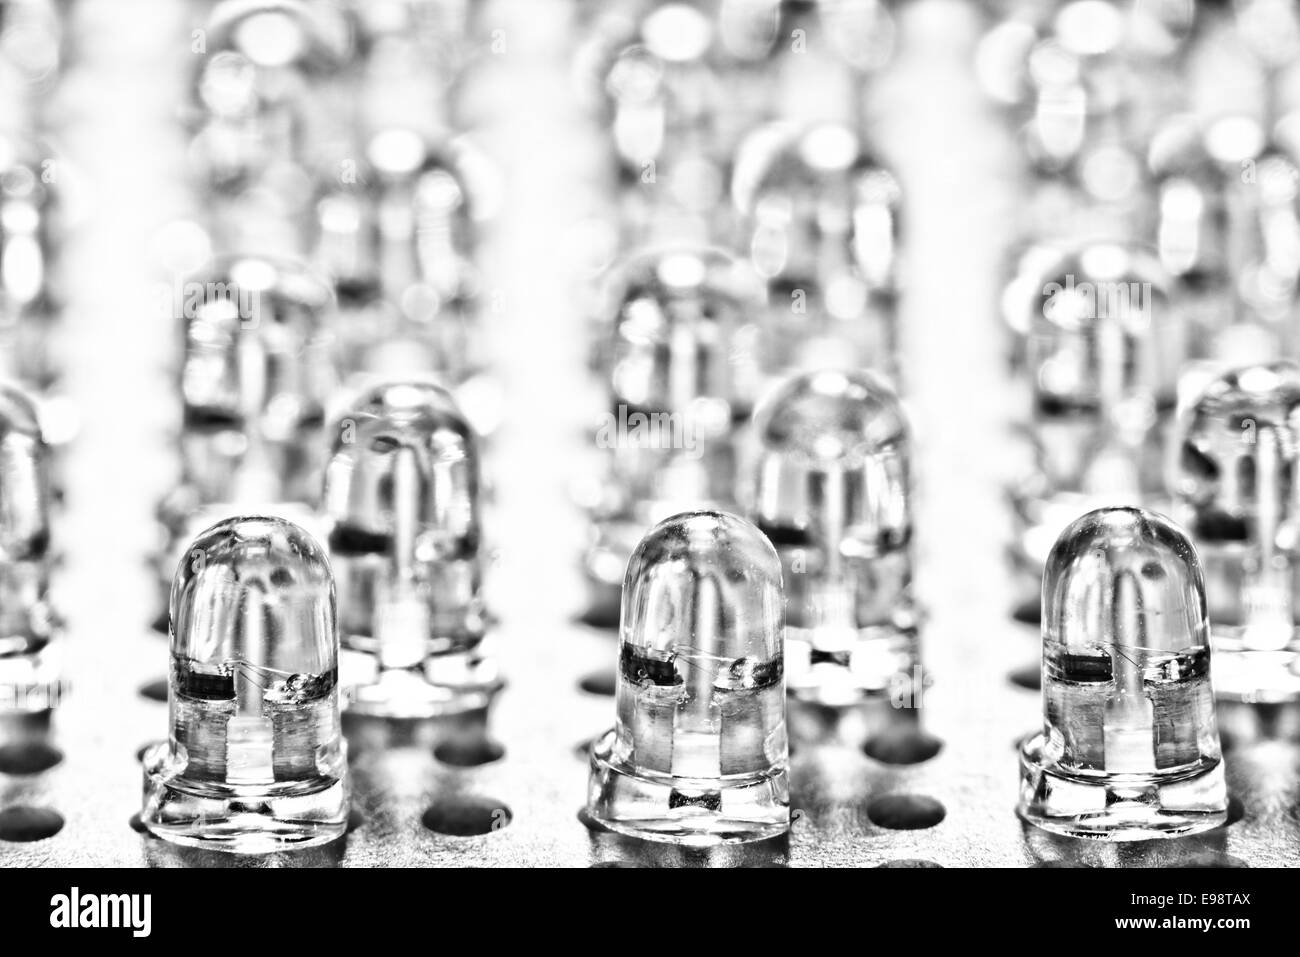 close up of row of light led light emitting diodes as part of a lighting circuit with anode and cathode - Stock Image